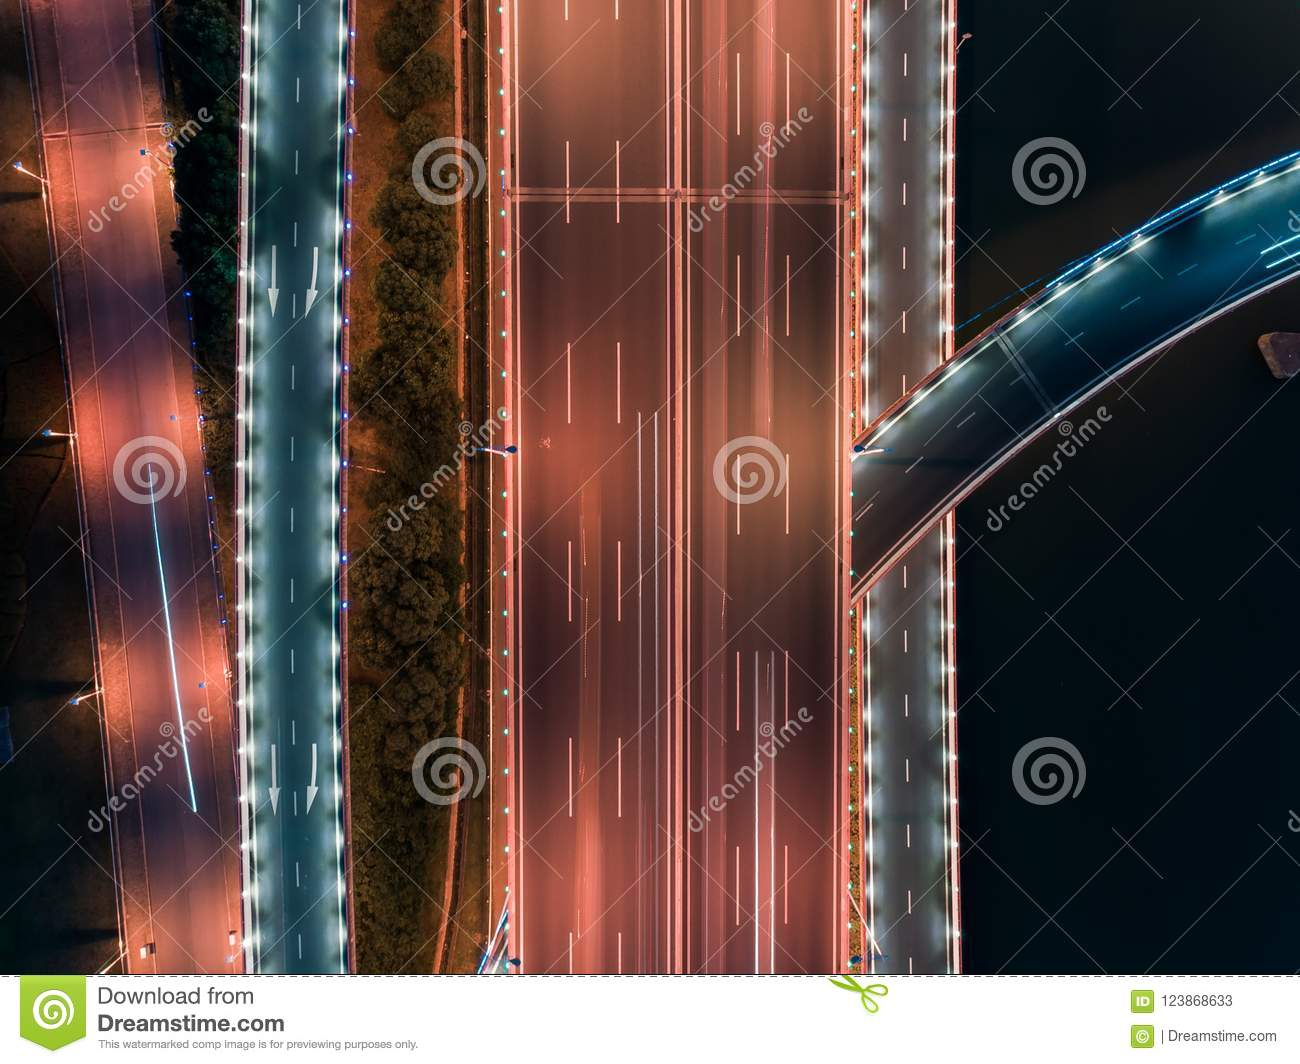 Aerial drone flight over night road traffic. Two-level road junction. Top view.